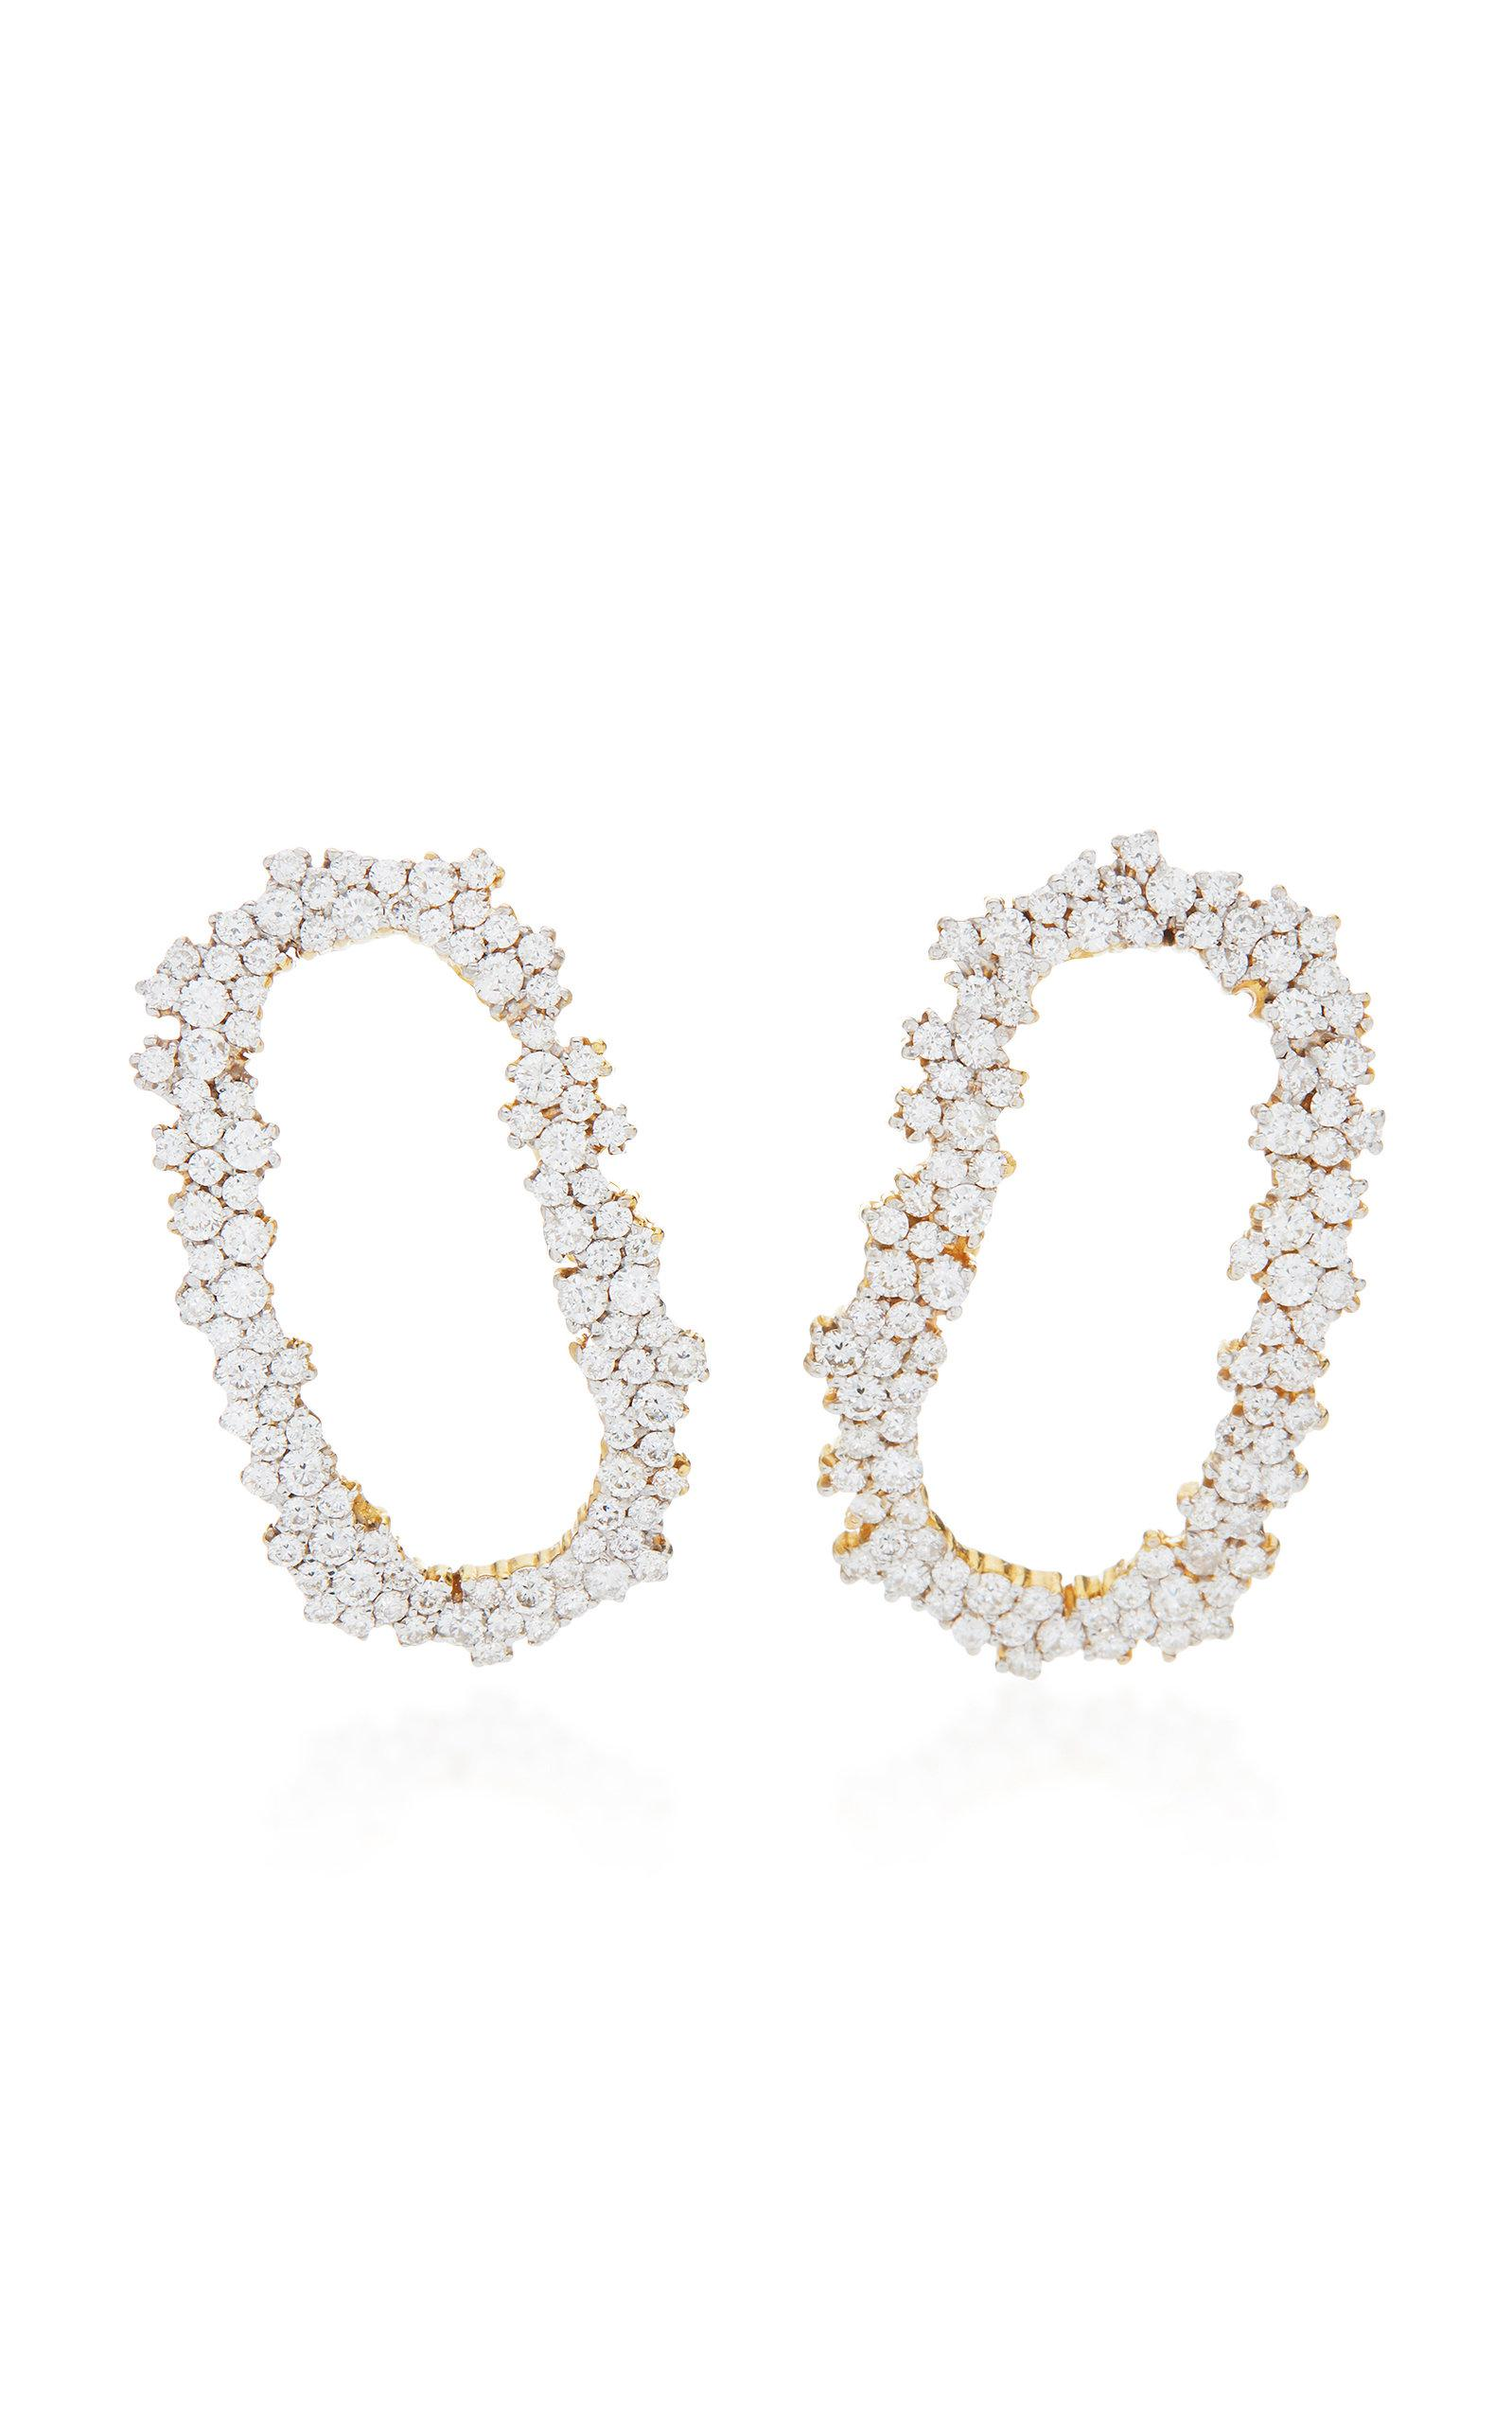 Diamond Iolanda Earrings Ana Khouri Lj893